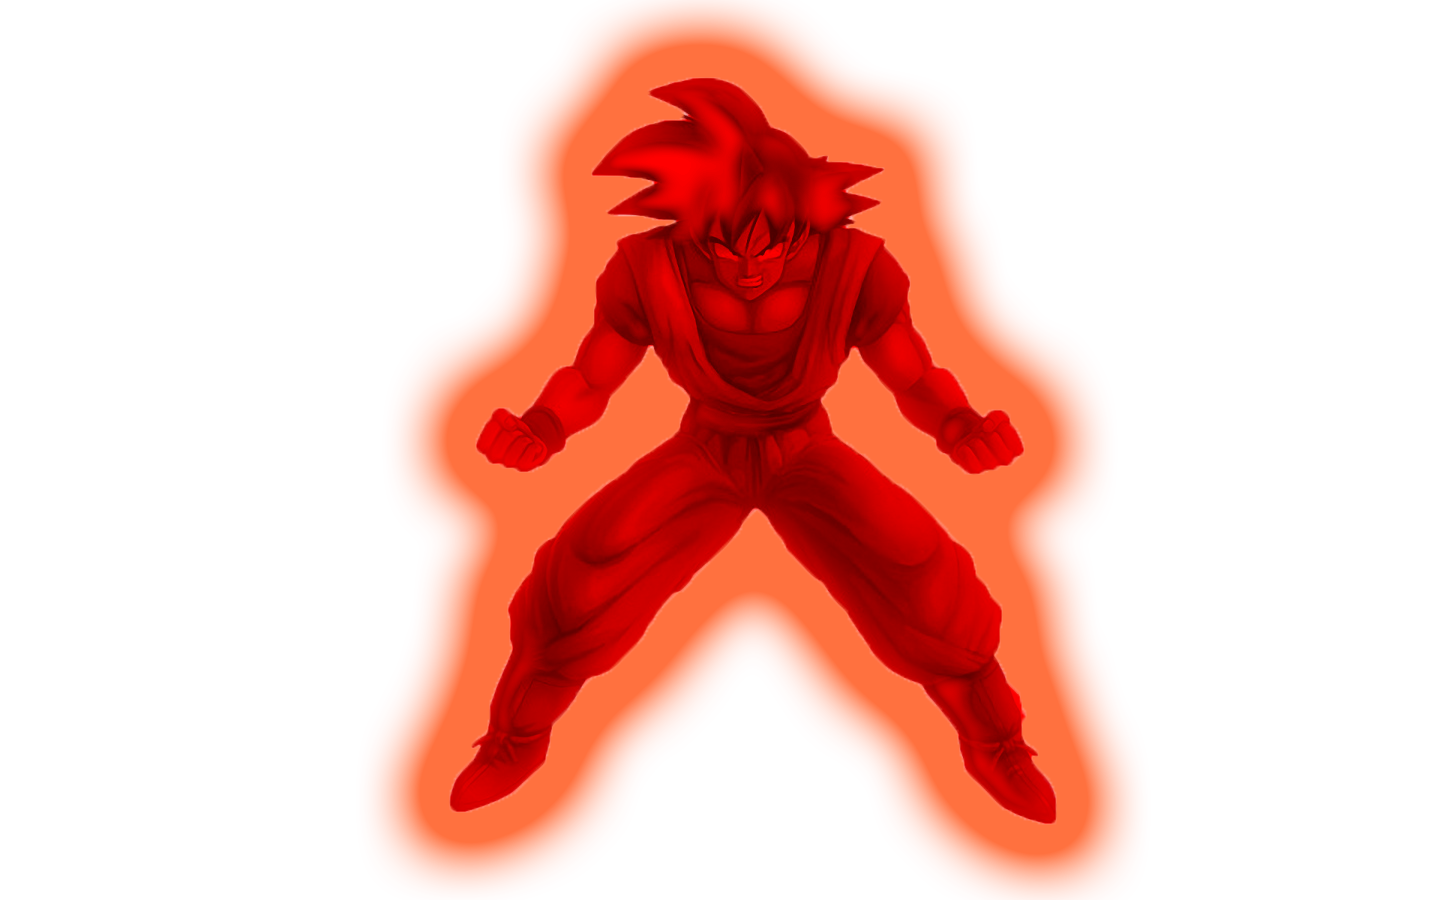 Ssj god goku png. Image ultimate tenkaichi super